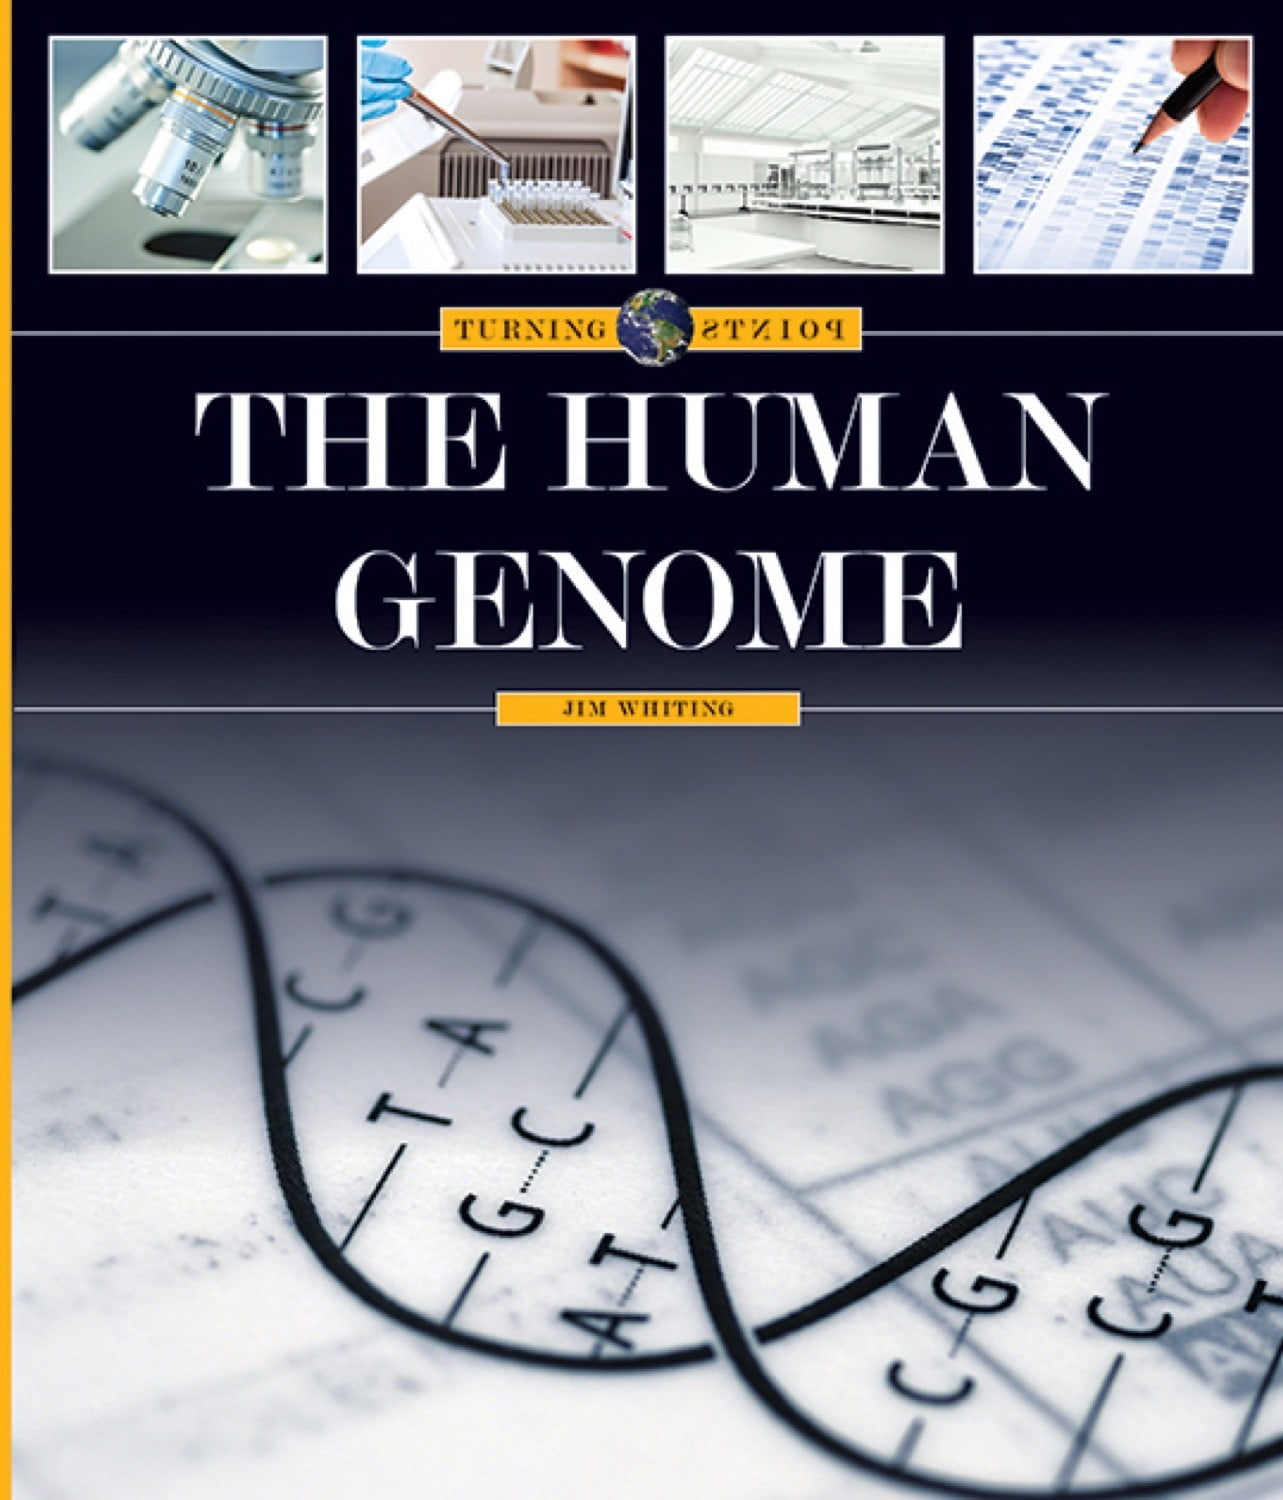 Turning Points: Human Genome, The